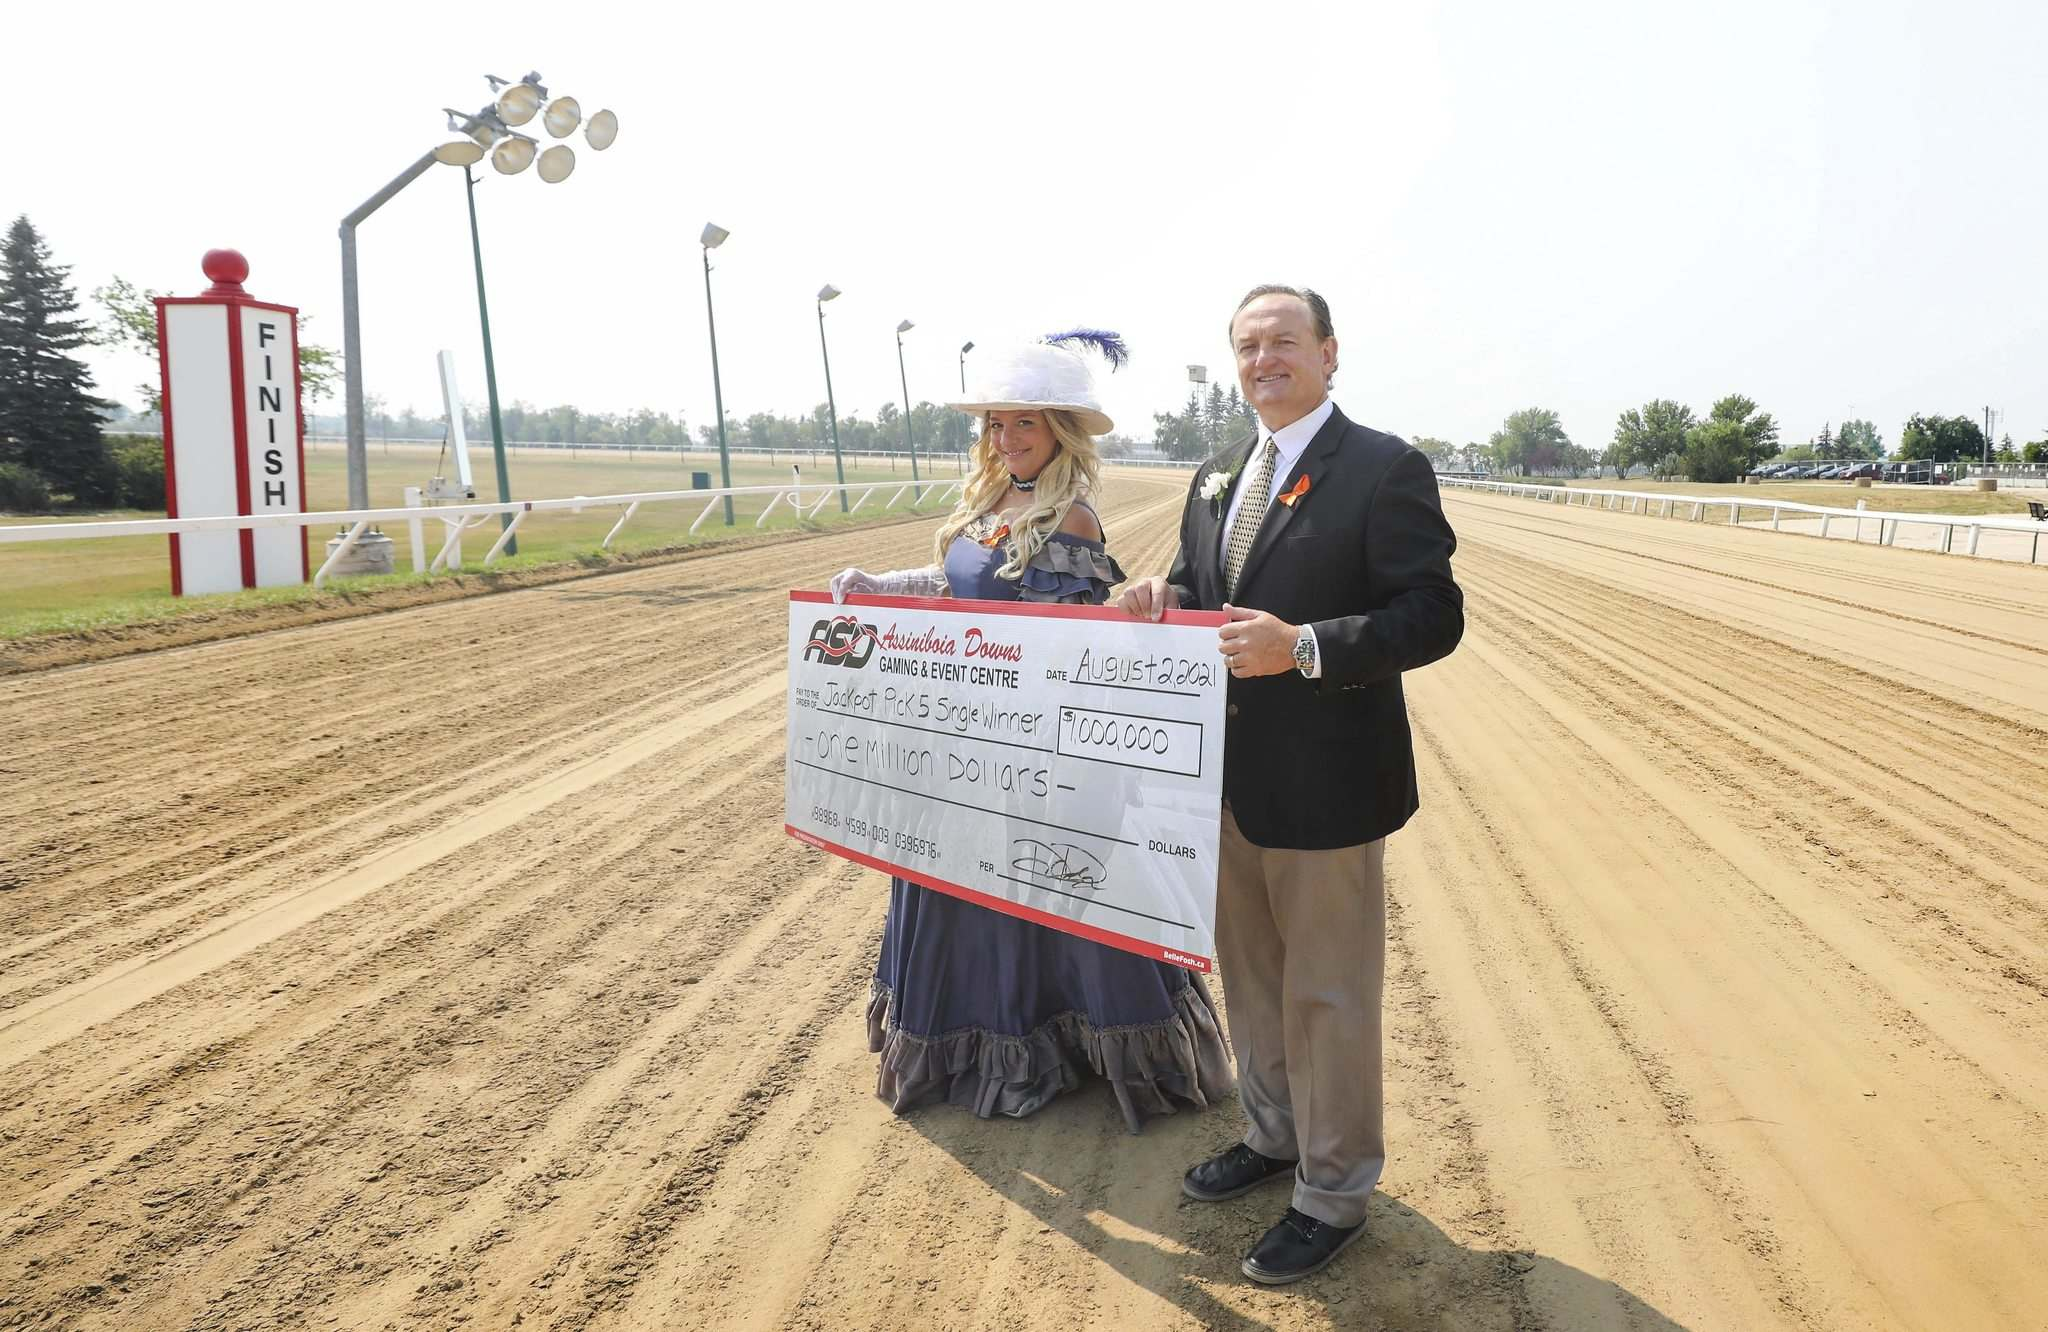 RUTH BONNEVILLE / WINNIPEG FREE PRESS</p><p>Assiniboia Downs CEO Darren Dunn and Francine Fournier with a giant cheque representing the big bucks to be won Monday at the Manitoba Derby.</p>